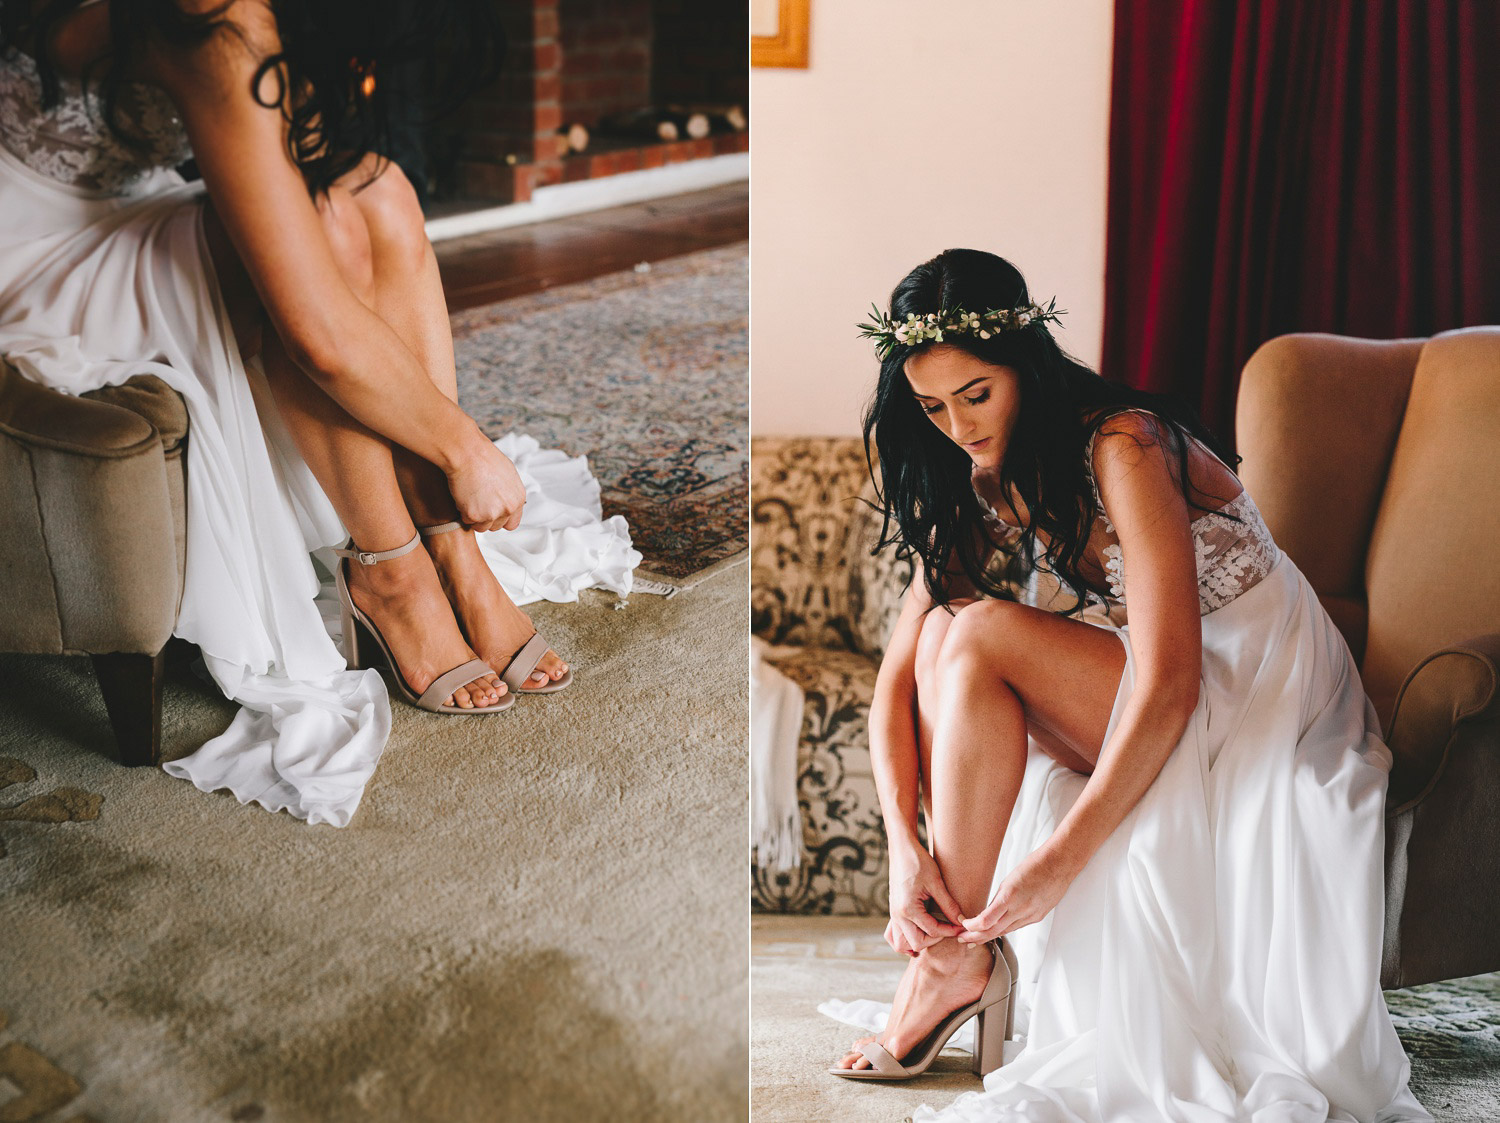 western-cape-photoghers-gen-scott-greyton-wedding-photography-charlie-ray41.jpg